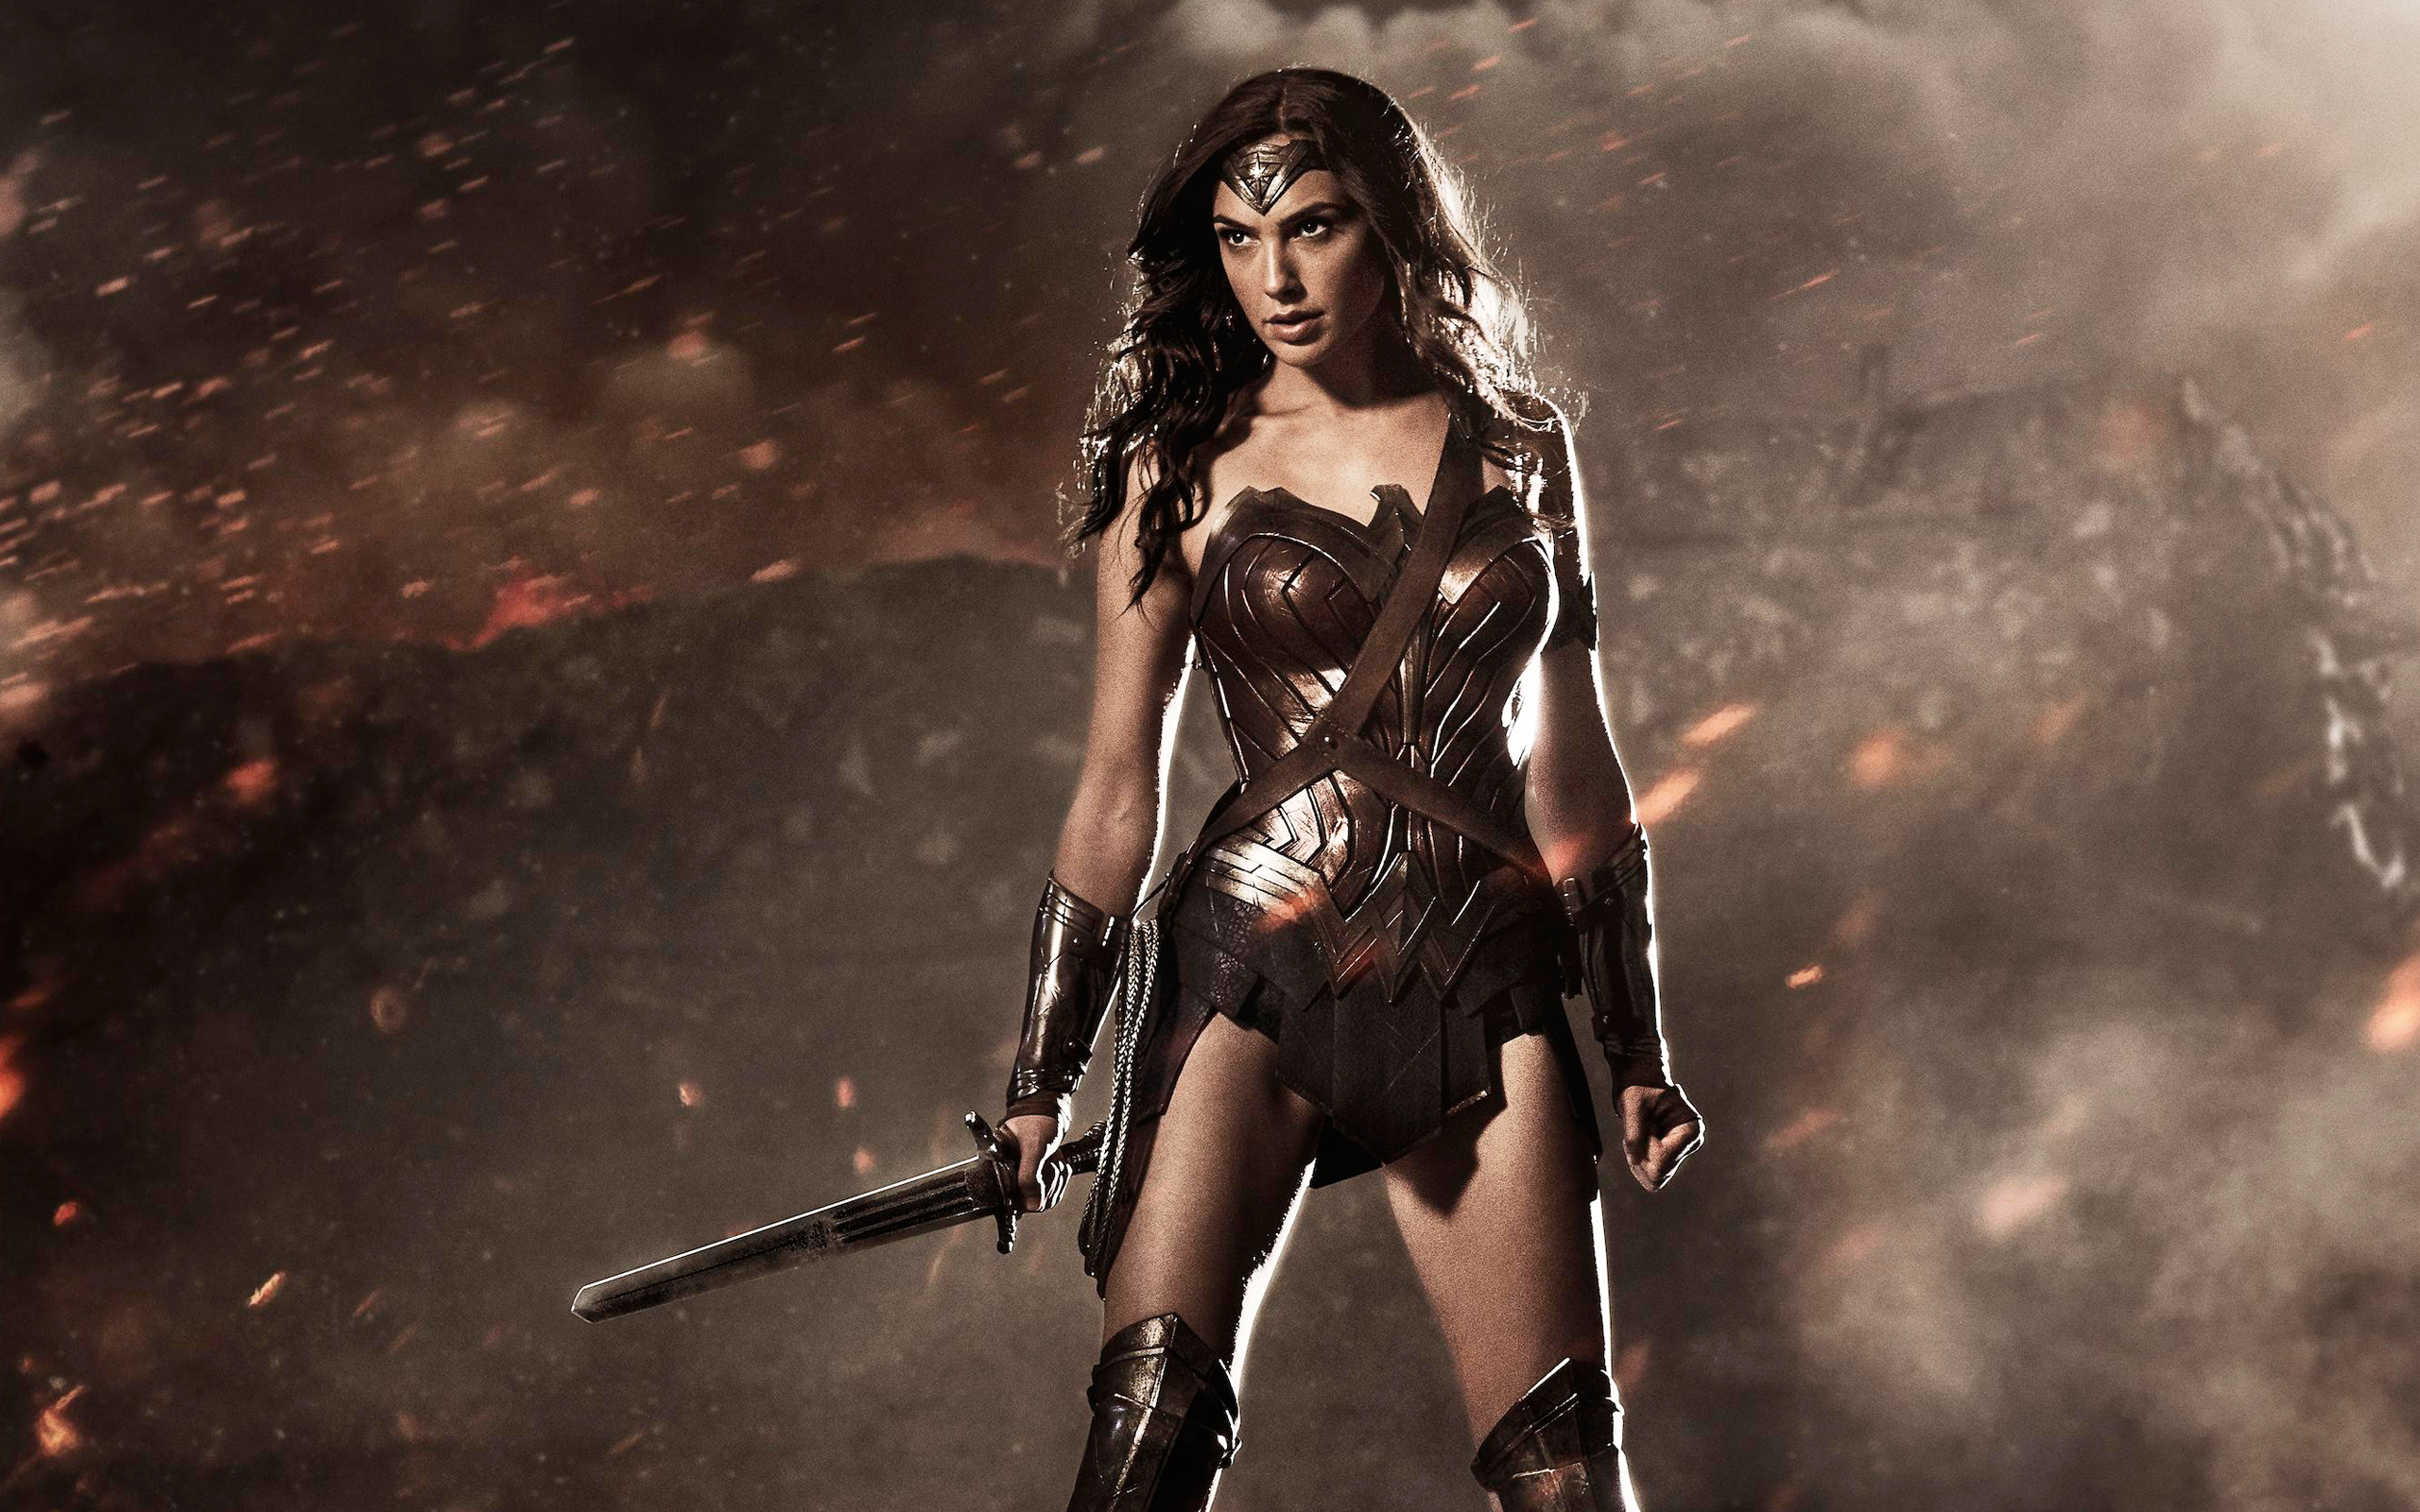 Photo of 5 Superpowers That Make Wonder Woman The Most Powerful Superhero in DC